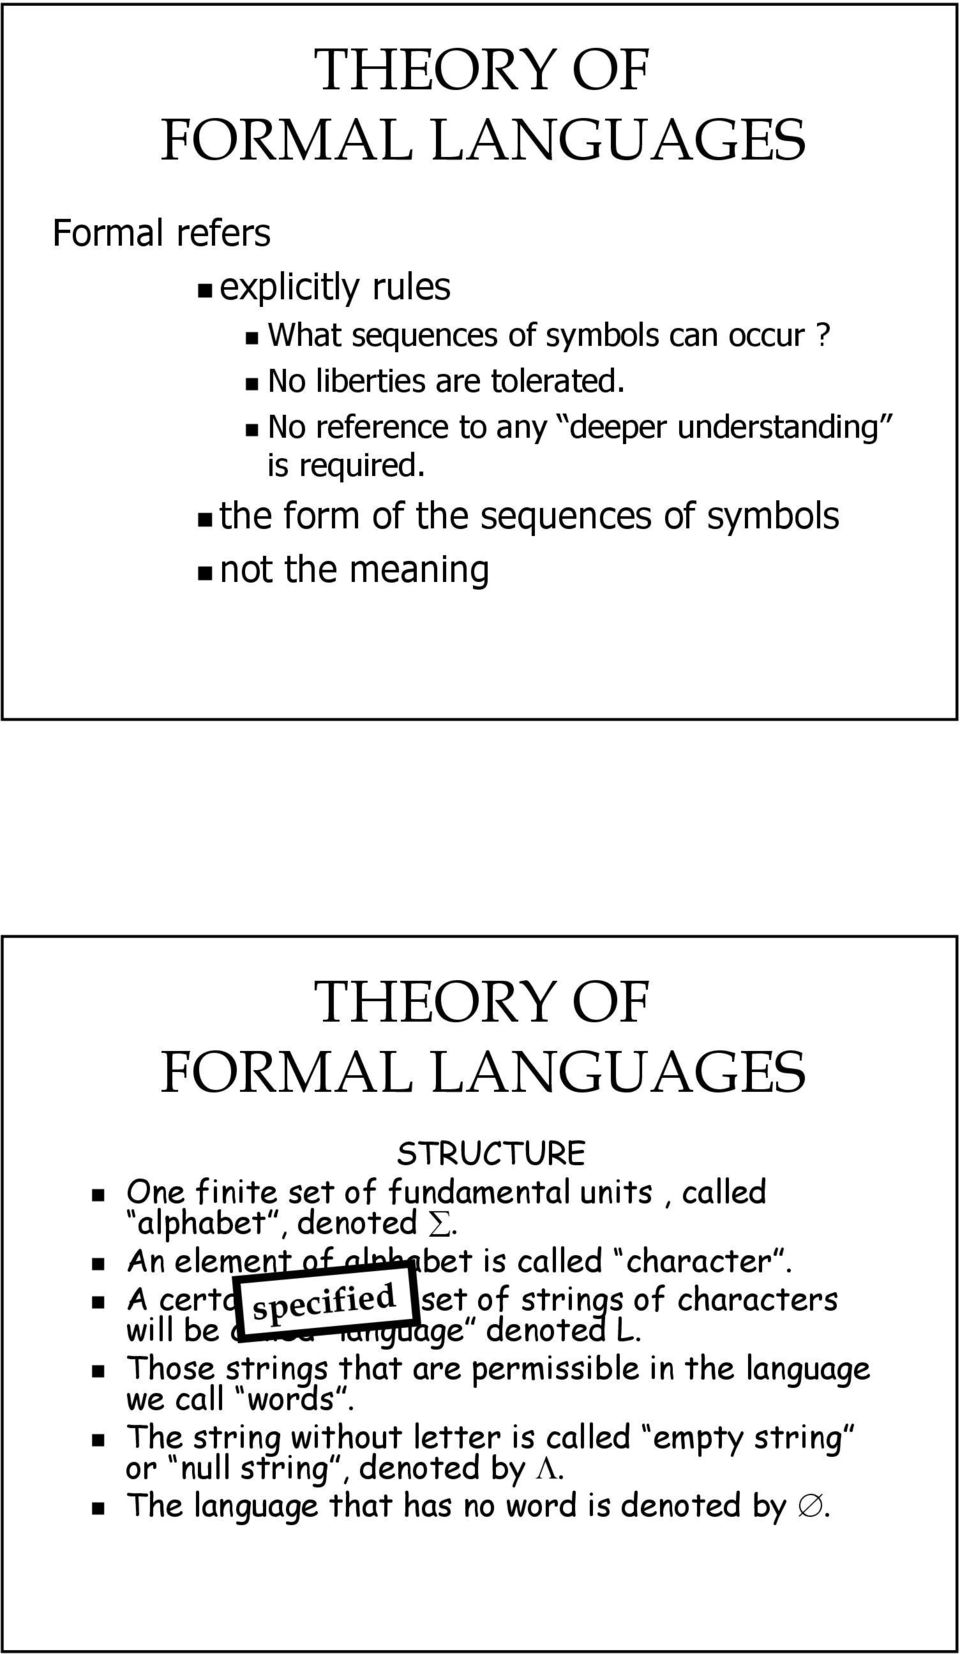 the form of the sequences of symbols not the meaning THEORY OF FORMAL LANGUAGES STRUCTURE One finite set of fundamental units, called alphabet, denoted.